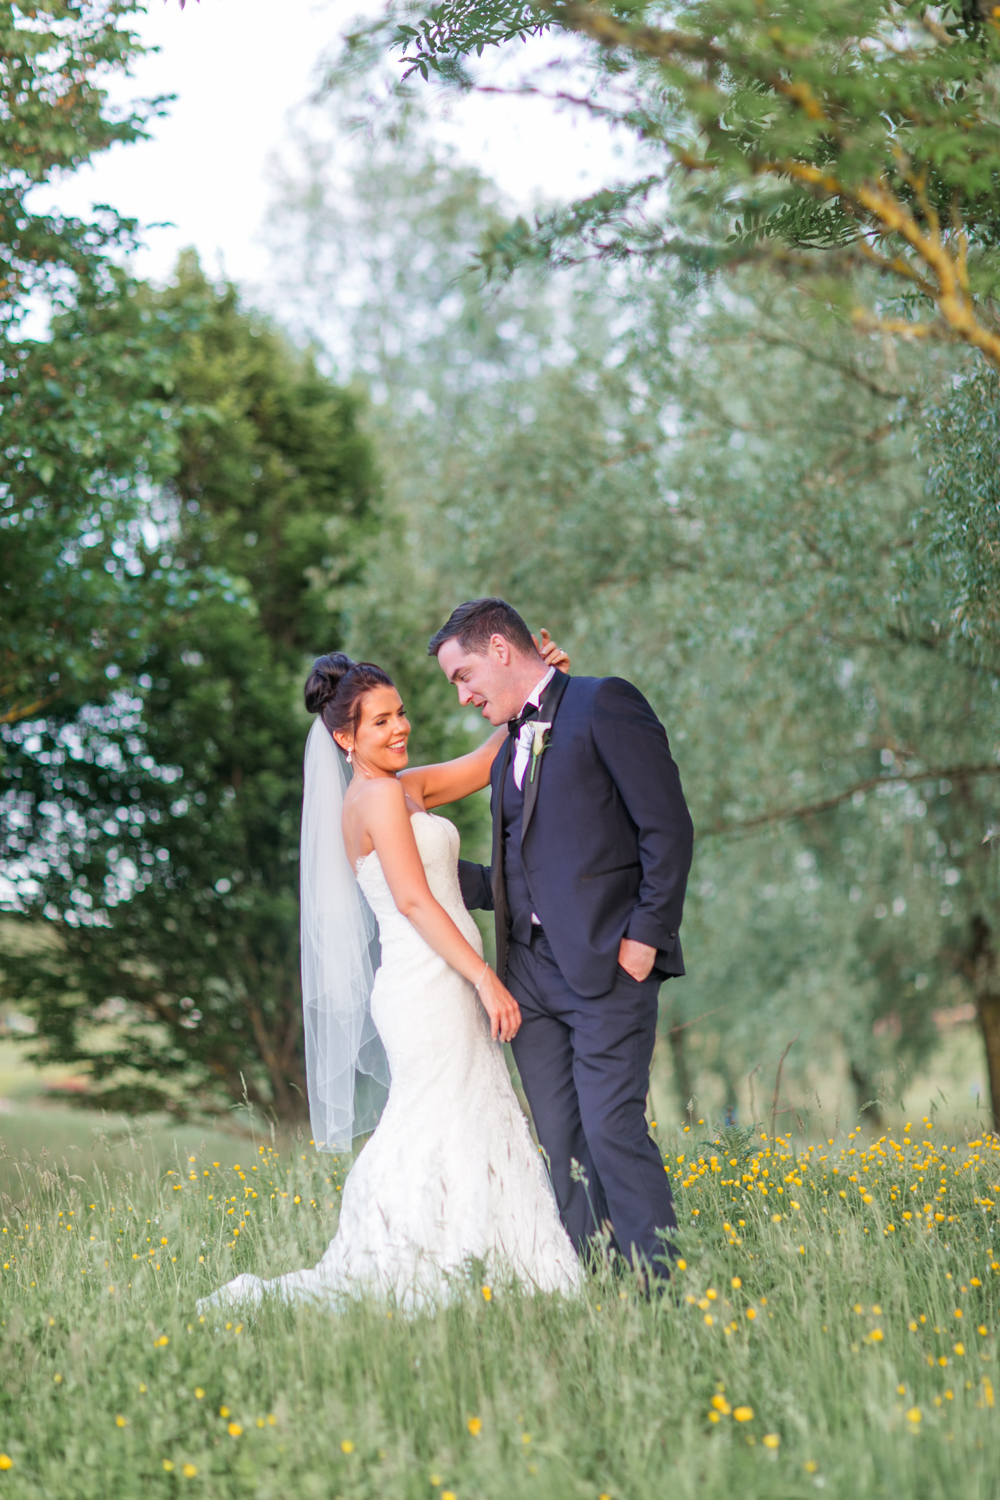 Bride and groom in a beautiful meadow posing for their wedding photographs